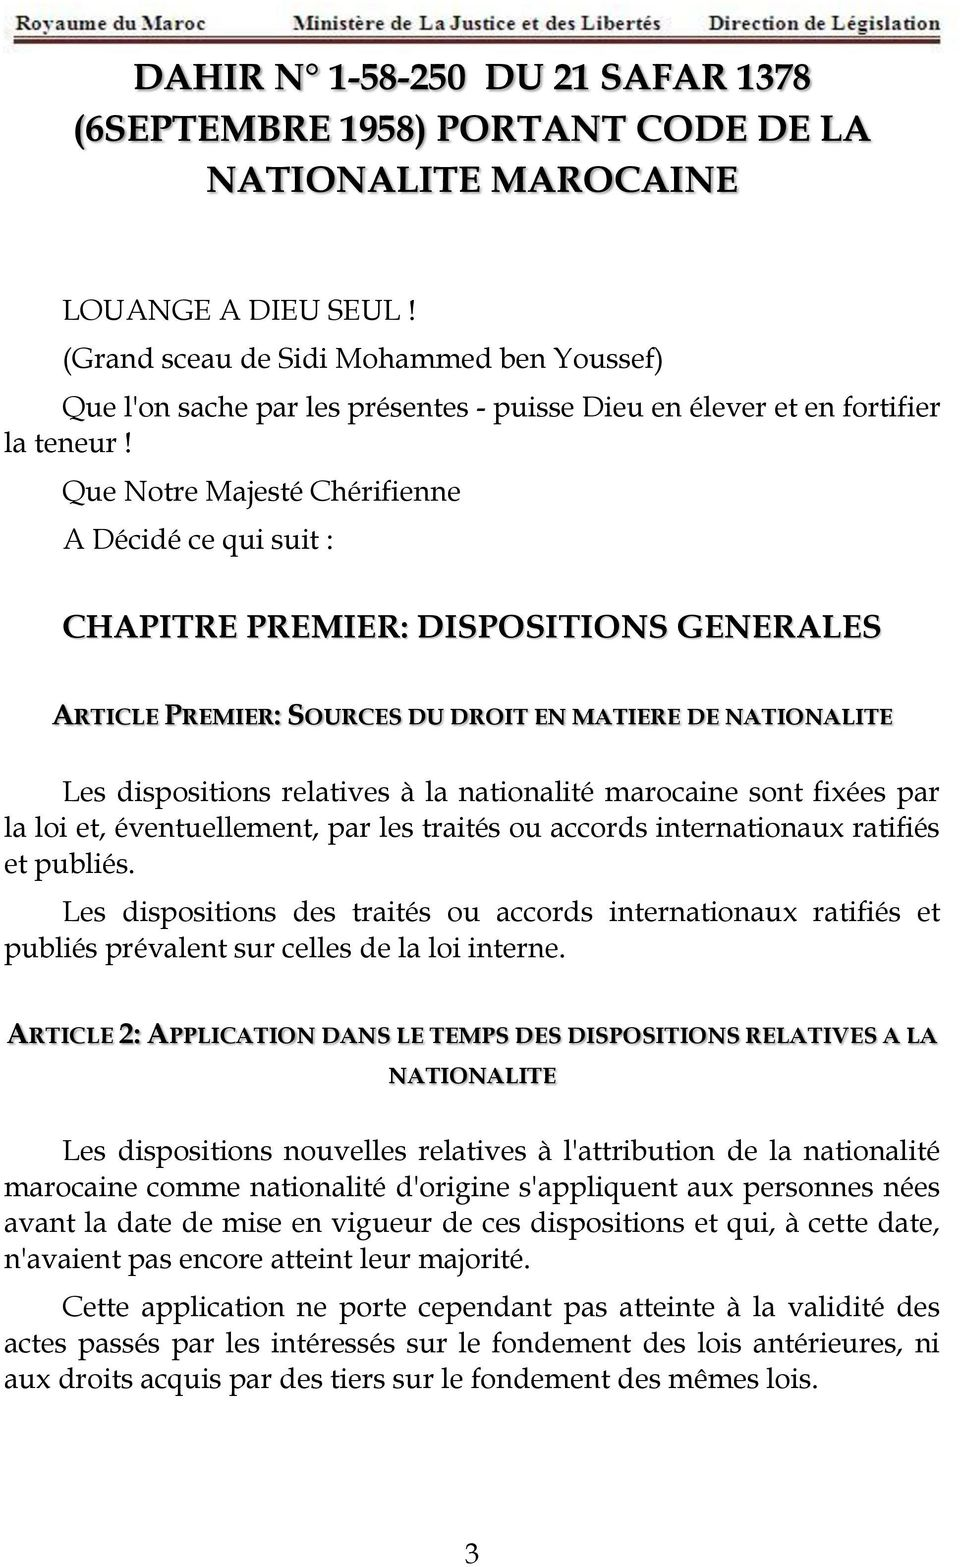 Que Notre Majesté Chérifienne A Décidé ce qui suit : CHAPITRE PREMIER: DISPOSITIONS GENERALES ARTICLE PREMIER: SOURCES DU DROIT EN MATIERE DE NATIONALITE Les dispositions relatives à la nationalité